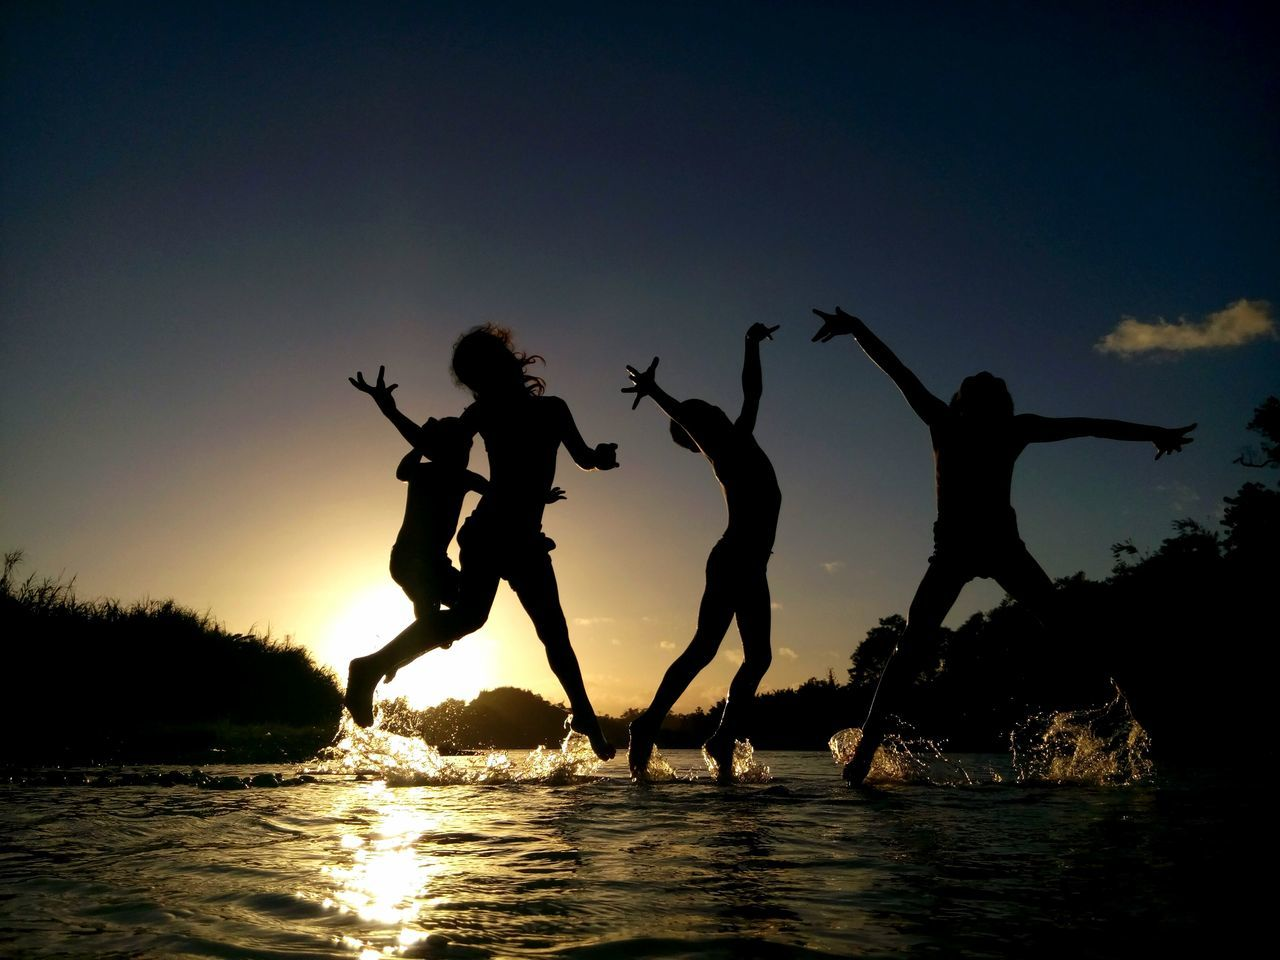 Silhouette Siblings Jumping Over River Against Sky During Sunset